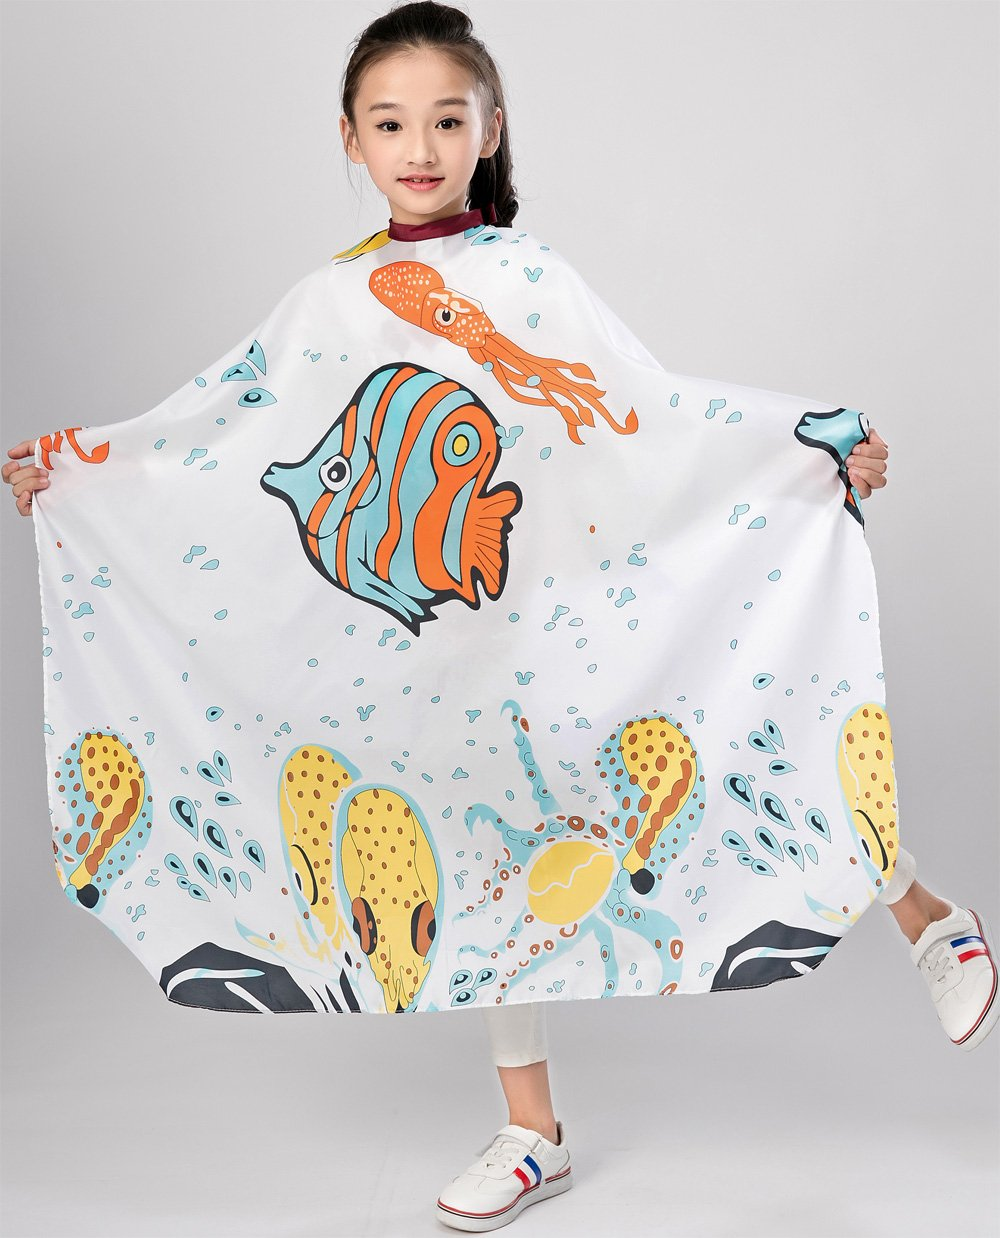 Kids Haircut Salon Cape Hair Cutting Shampoo Waterproof Styling Capes Cloth for Child by Perfehair (Image #4)